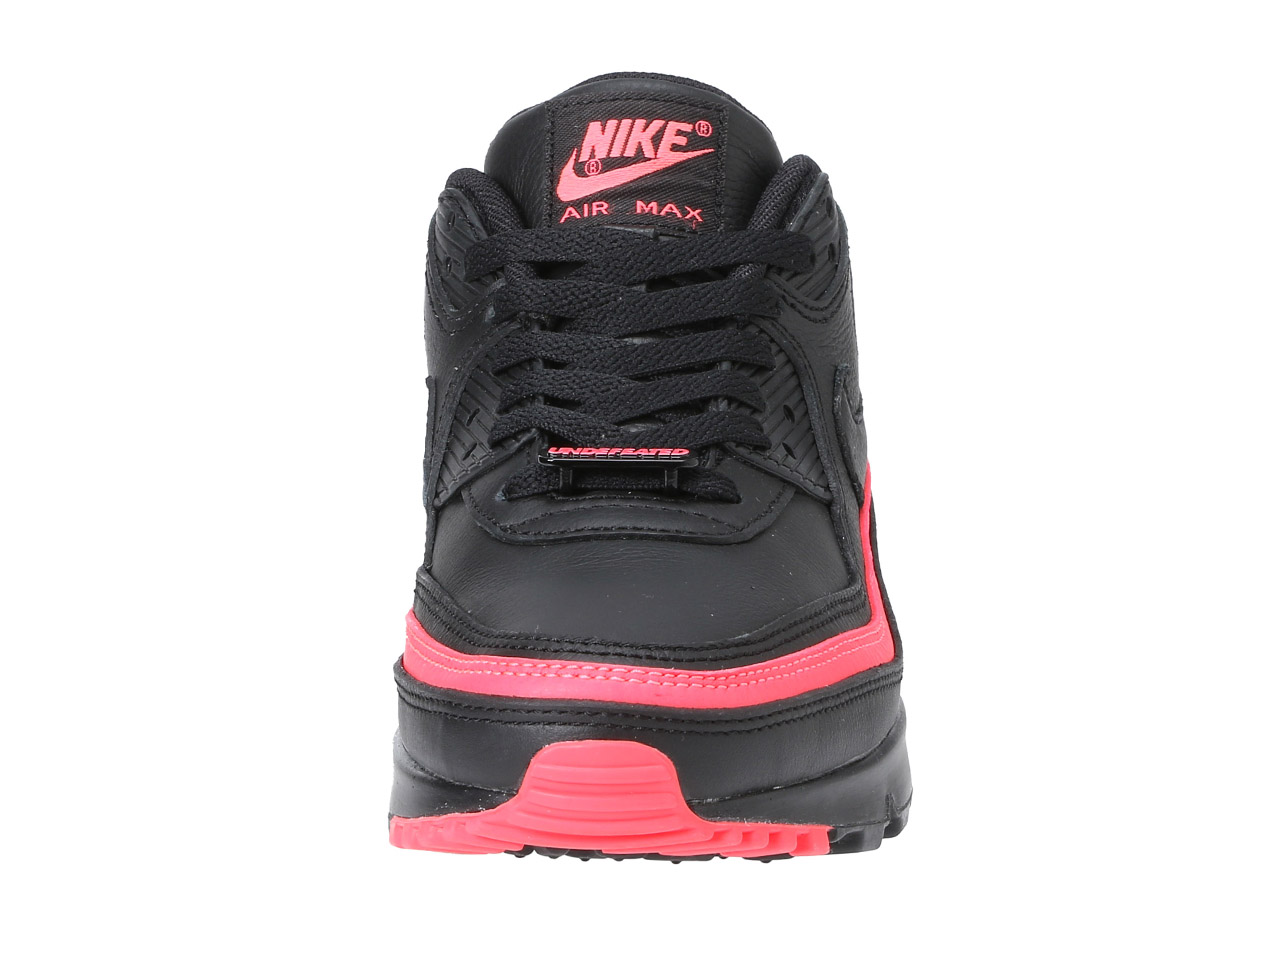 【SALE】UNDEFEATED × NIKE AIR MAX 90 - BLACK/RED